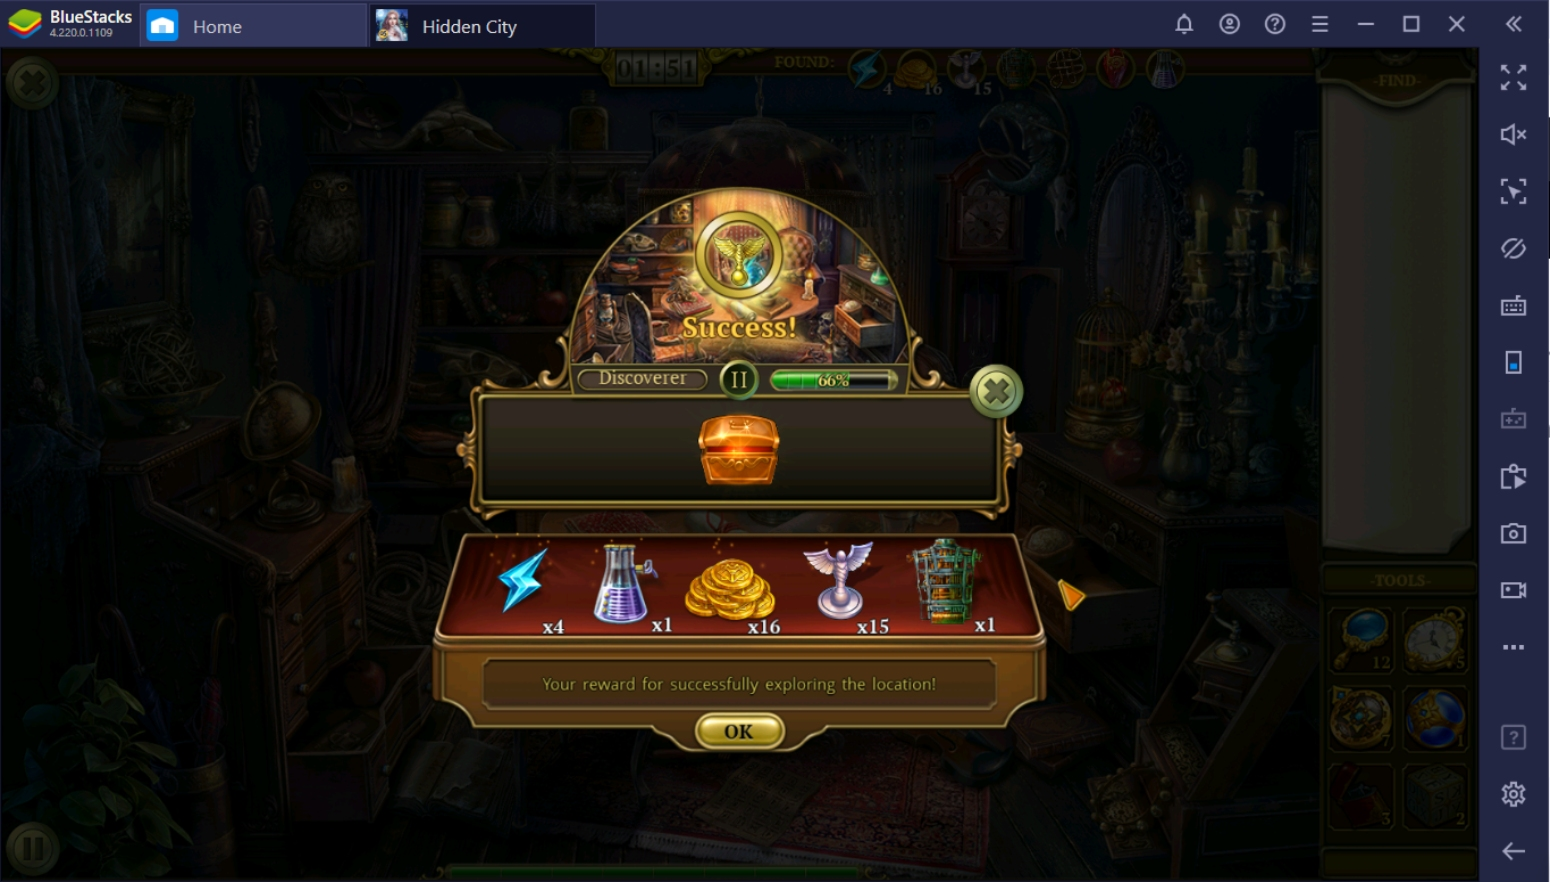 Download Hidden City on PC with BlueStacks